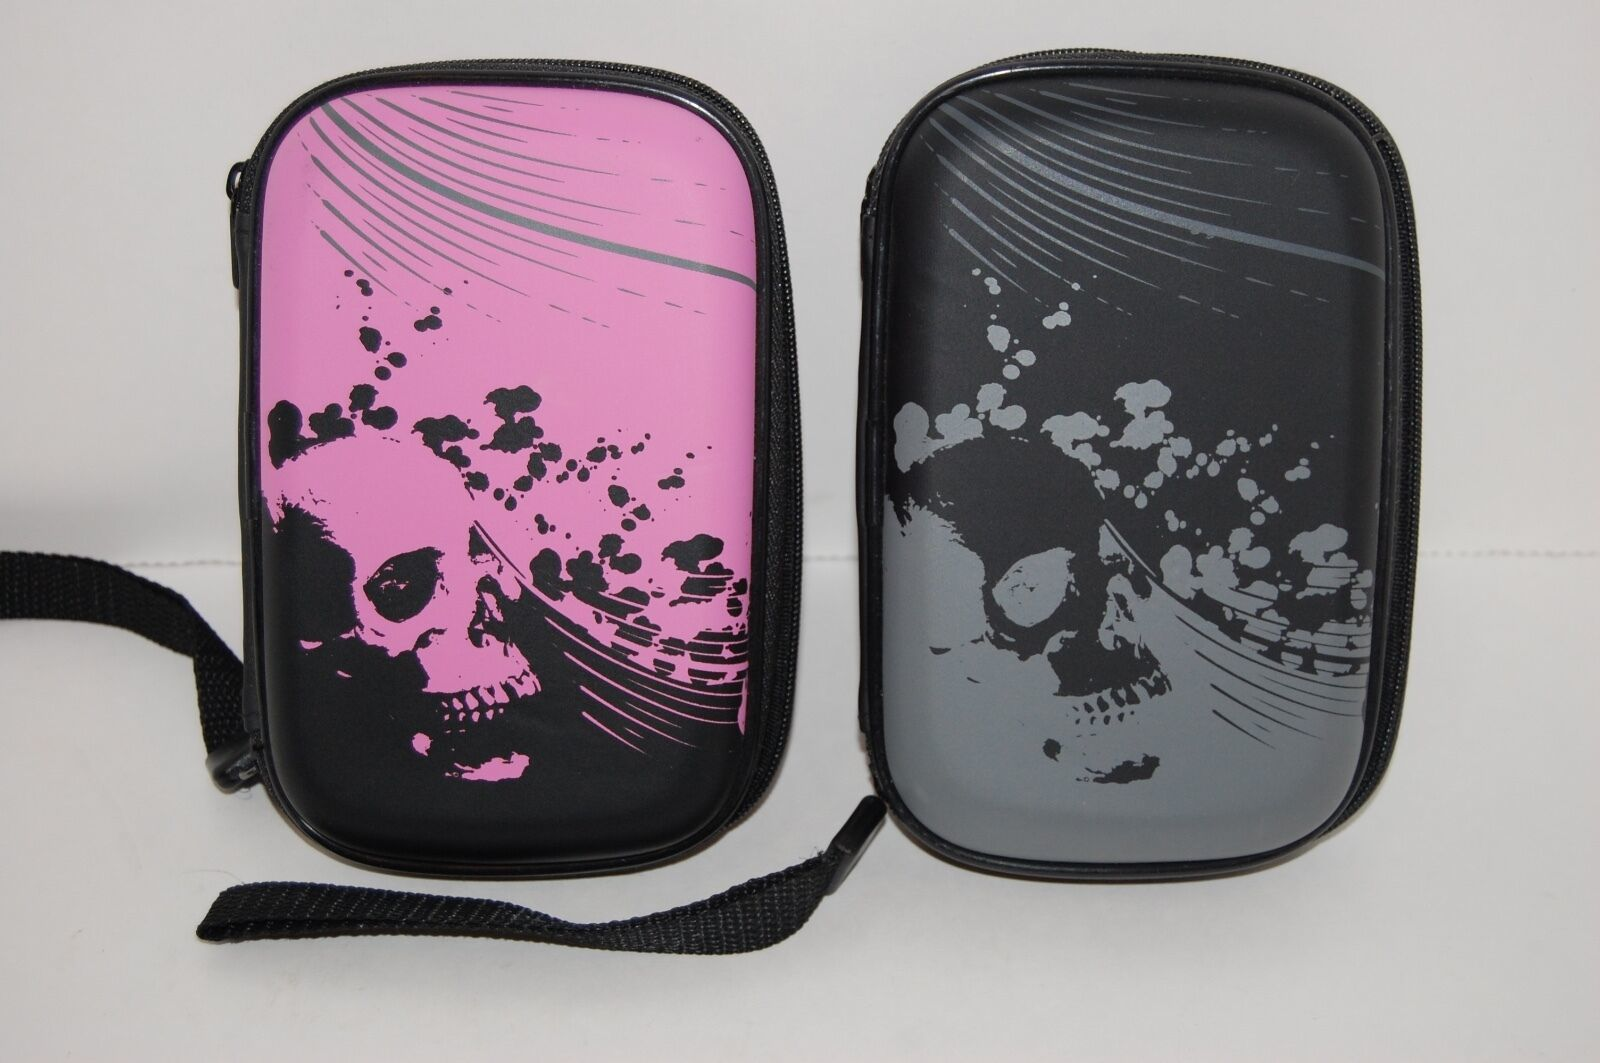 Primary image for Nintendo DS Carrier Cover Skull Graphic Cases Pink and Black selling as a lot